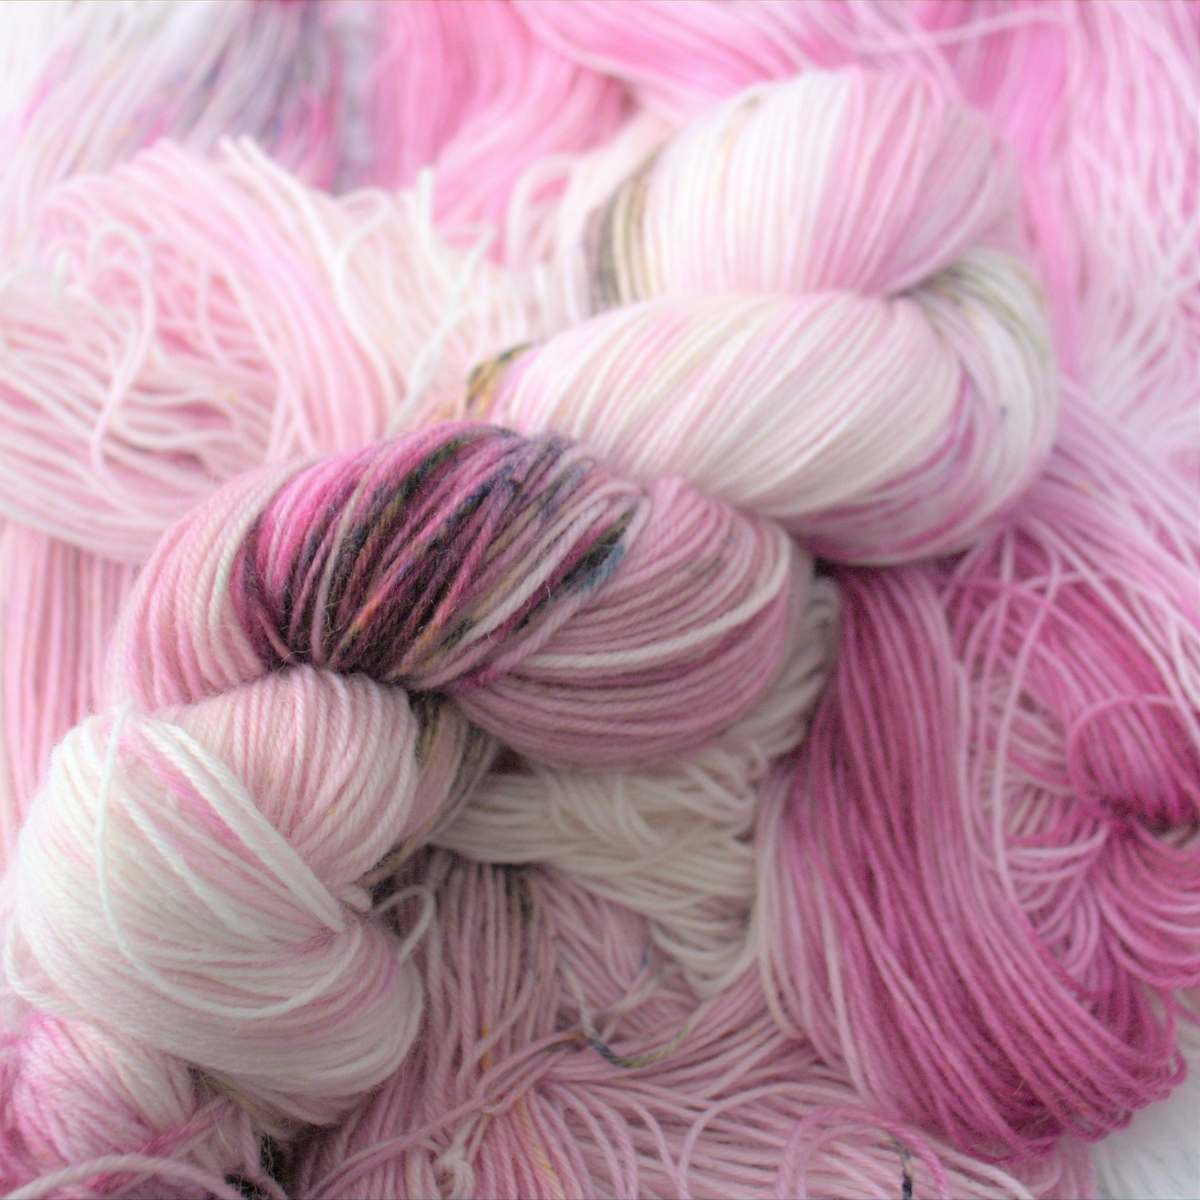 woodico.pro hand dyed yarn 046 copy 1 1200x1200 - Hand dyed yarn / 047